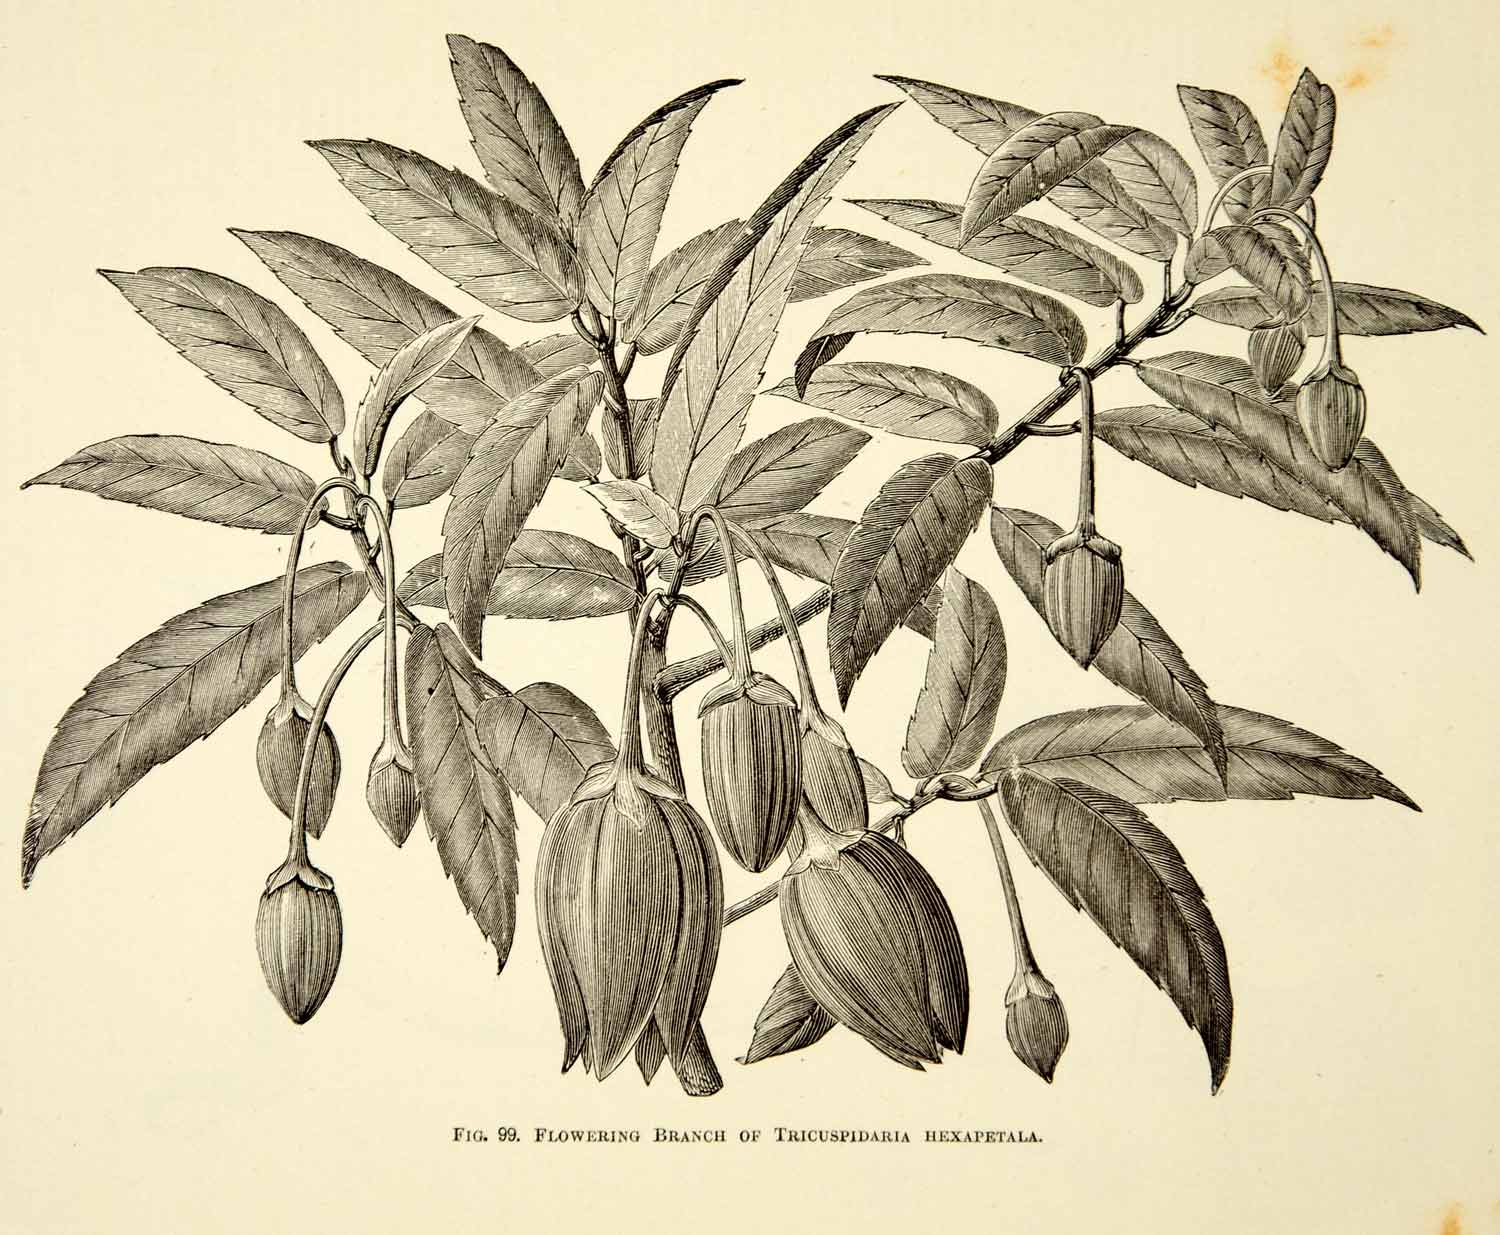 1887 Wood Engraving Art Botanical Tricuspidaria Hexapetala Flower Plant IDG1